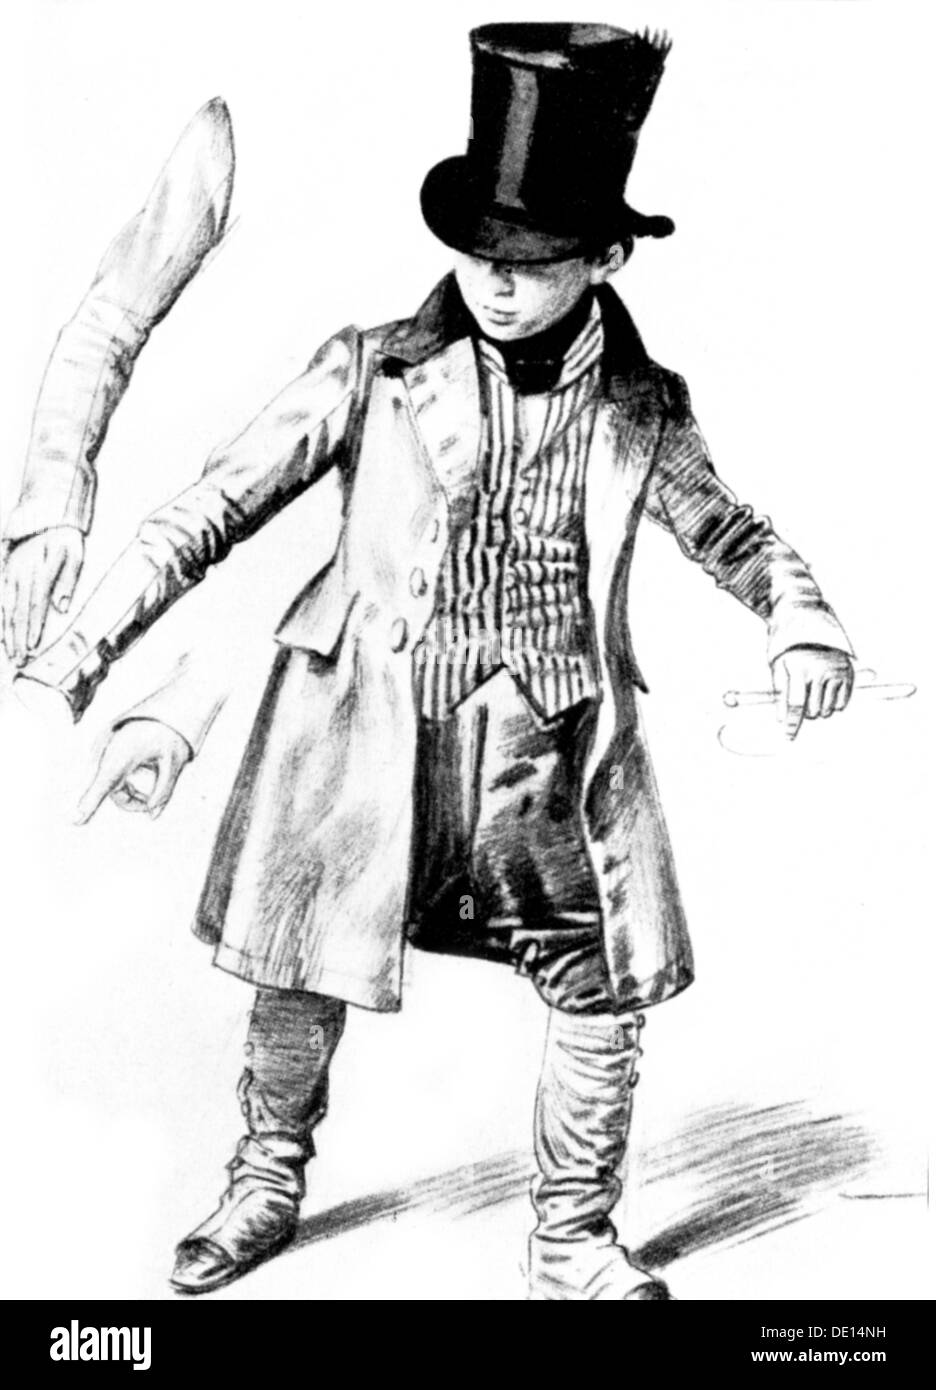 fashion, 19th century, boy in livery, drawing by Franz Kugler (1808 - 1858), 19th century, 19th century, graphic, graphics, clothes, outfit, outfits, men's fashion, livery, servant, servants, manservant, menservants, occupation, occupations, headpiece, headpieces, tophat, top hat, tophats, top-hat, topper, high hat, top-hats, toppers, high hats, frock coat, waistcoat, waistcoats, vest, gaiter, puttee, gaiters, puttees, full length, domestics, historic, historical, male, boy, child, people, Additional-Rights-Clearences-NA - Stock Image